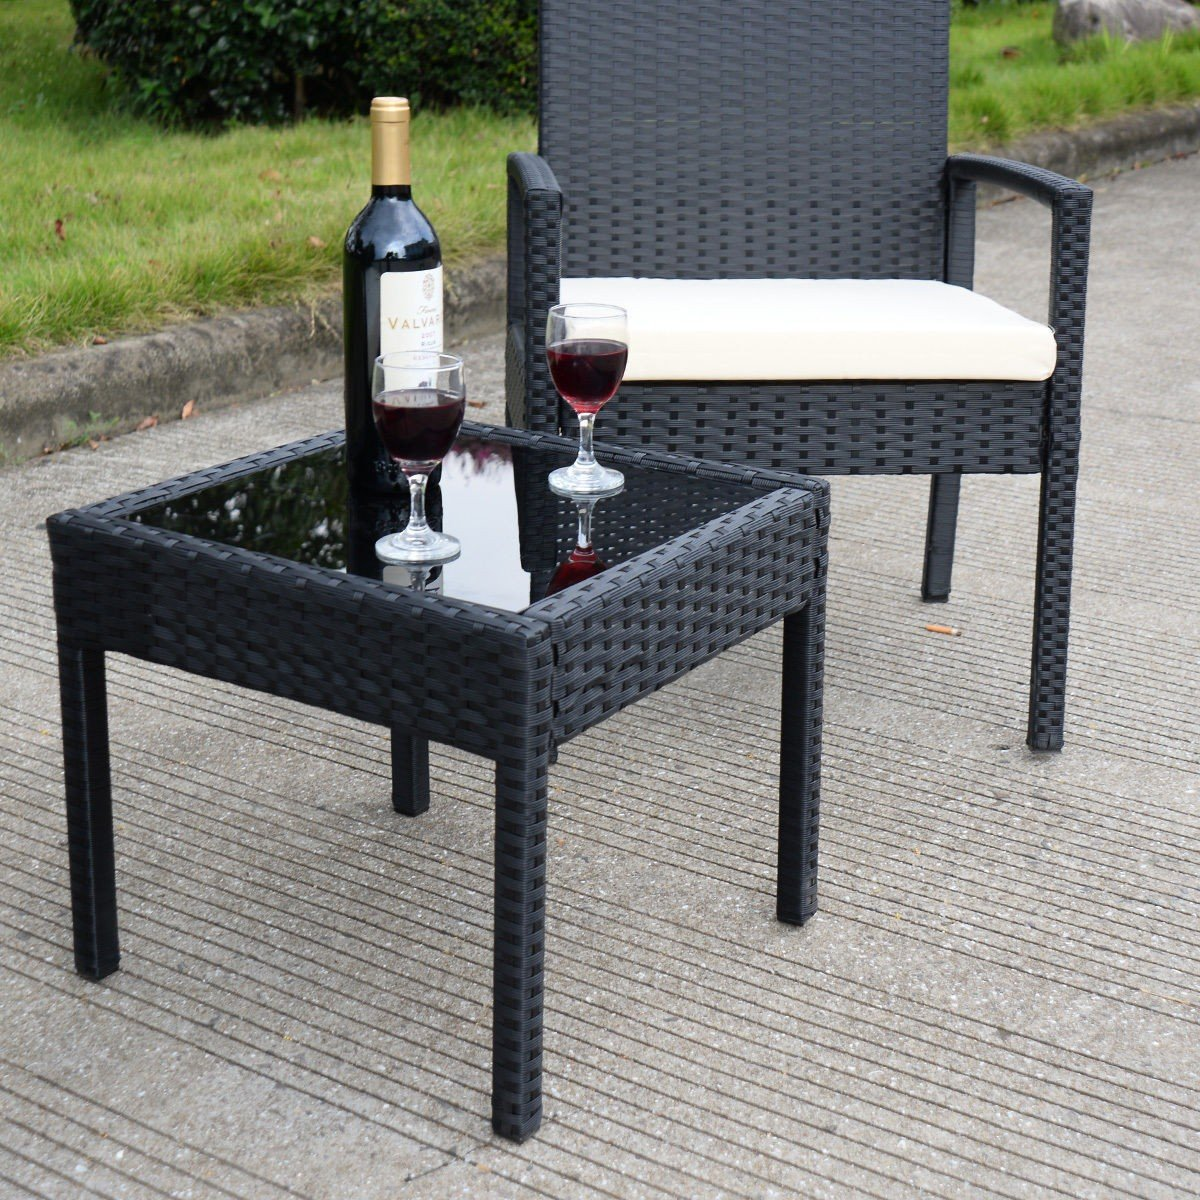 3 pcs Outdoor Rattan Patio Furniture Set - By Choice Products by By Choice Products (Image #4)